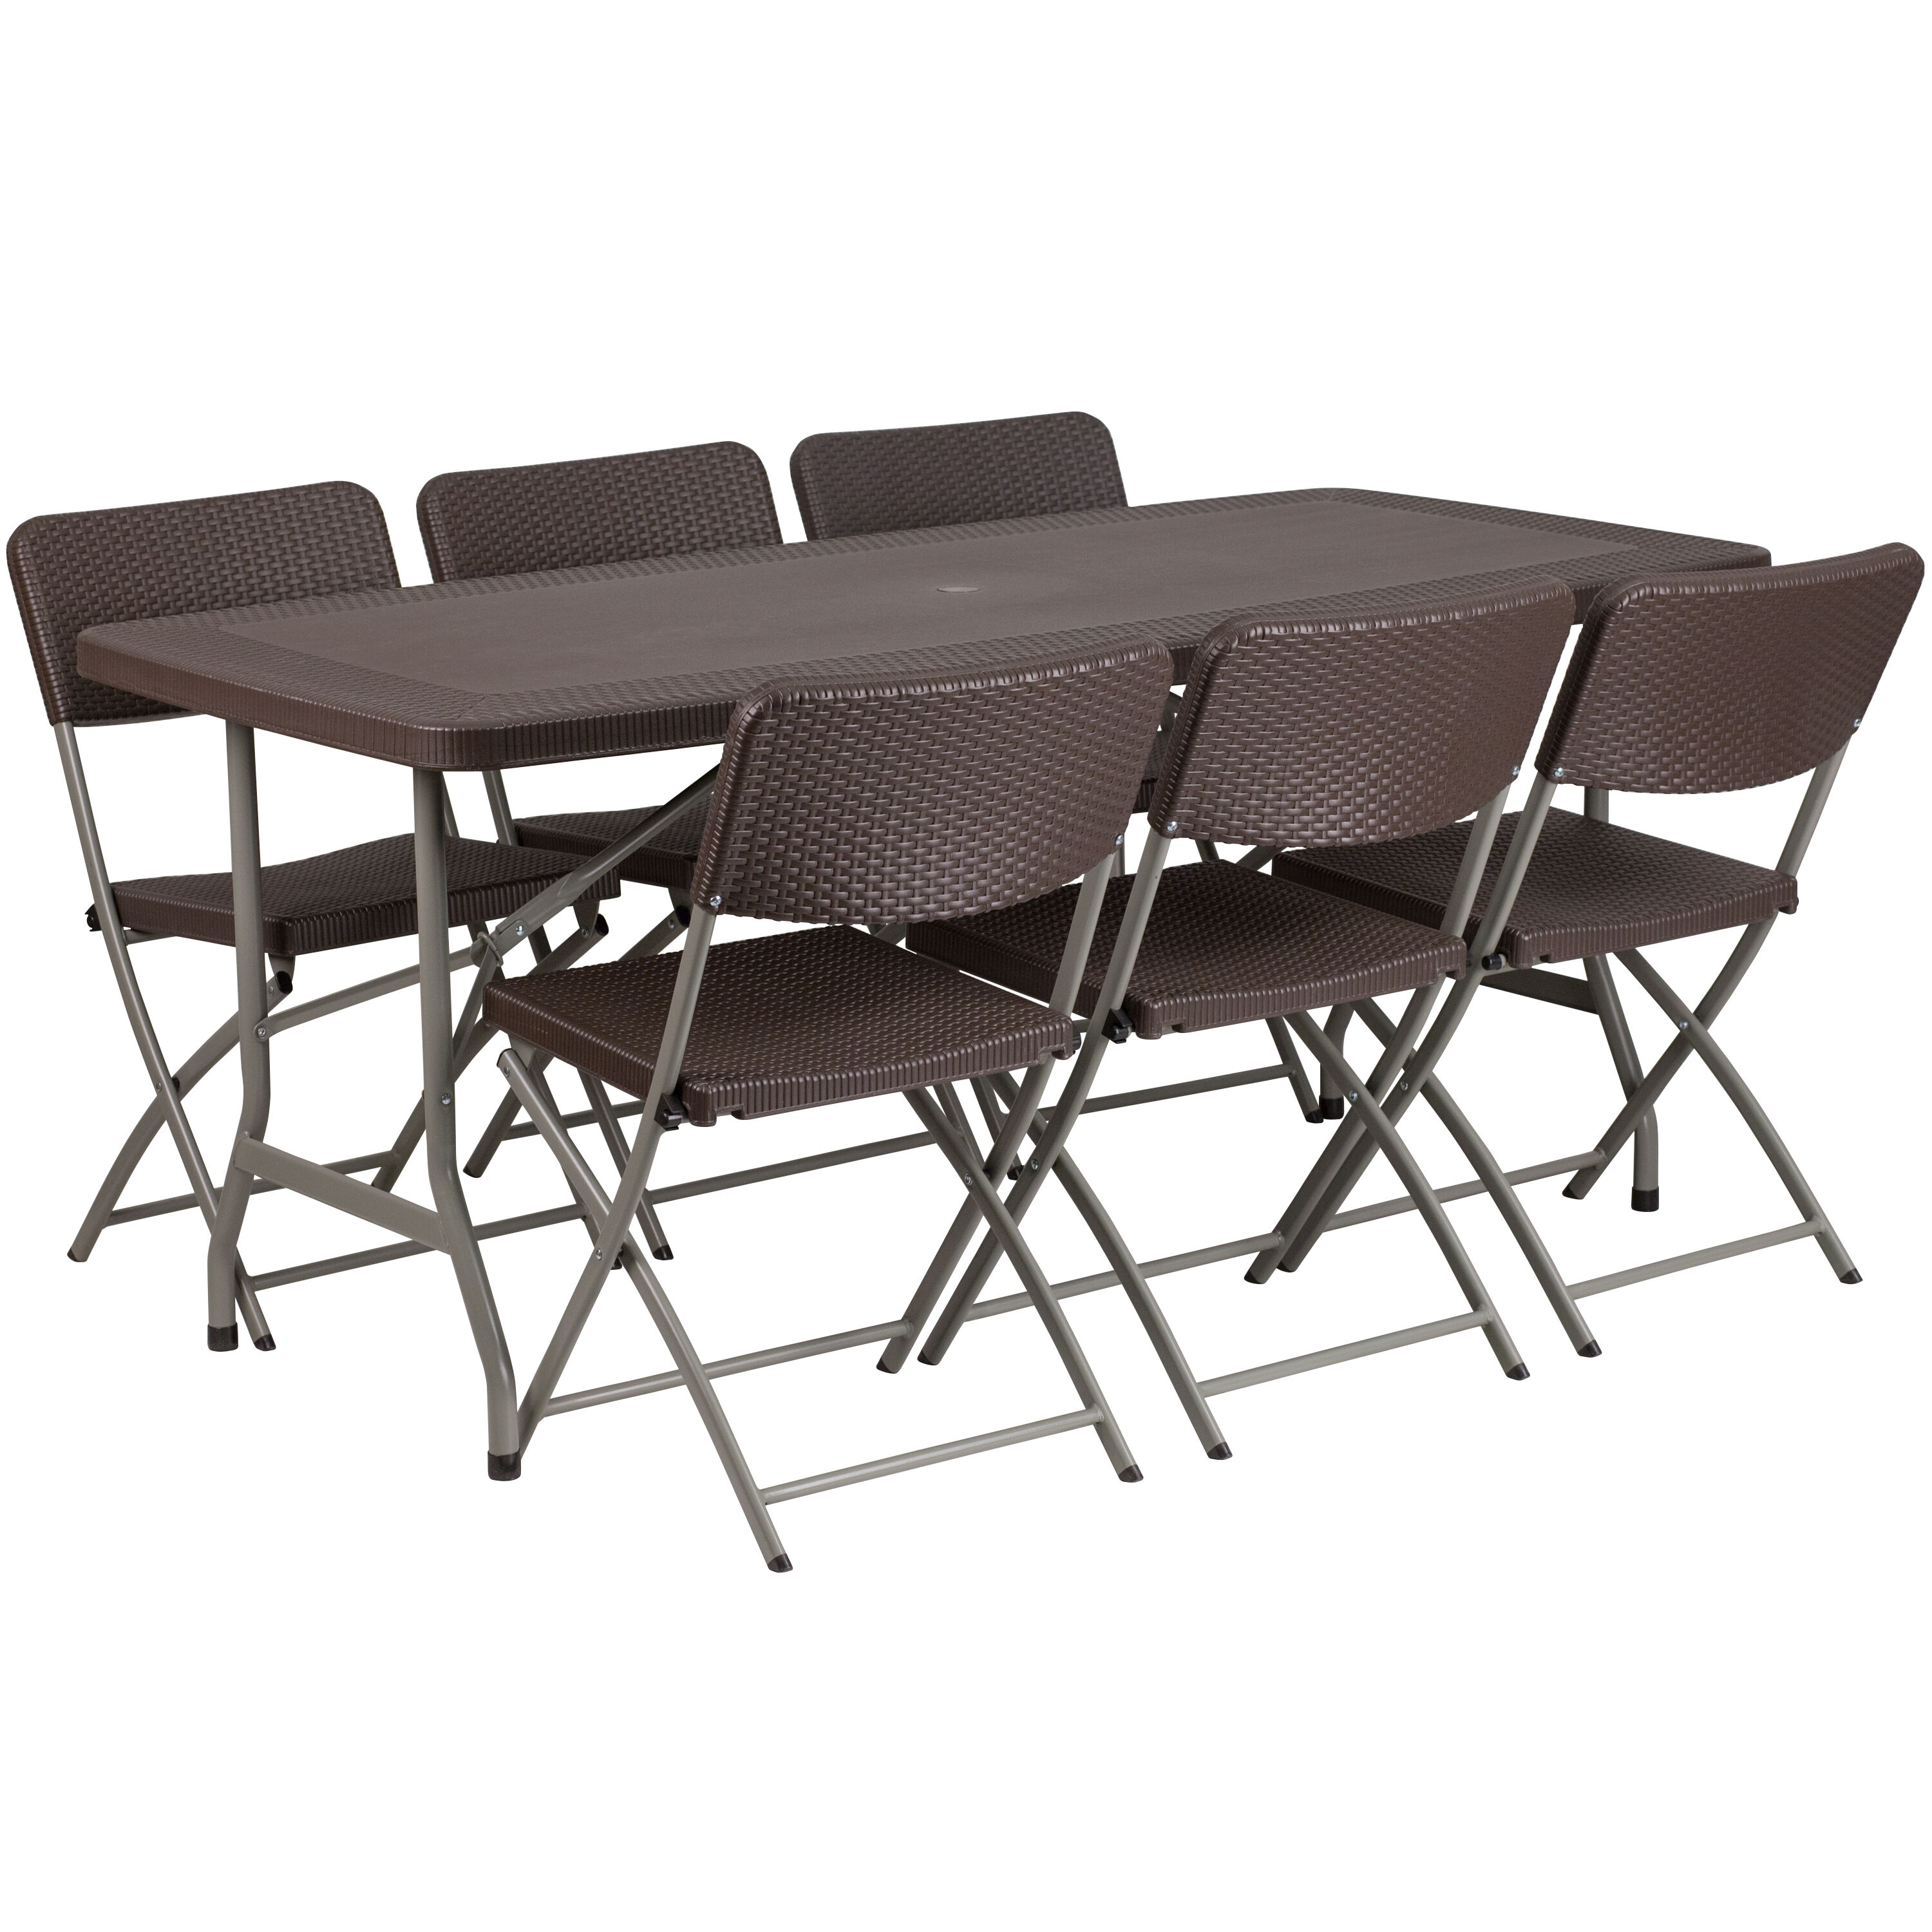 folding table and chair set white covers for sale foldingchairs4less sets 32 5 w x 67 l brown rattan plastic with 6 chairs